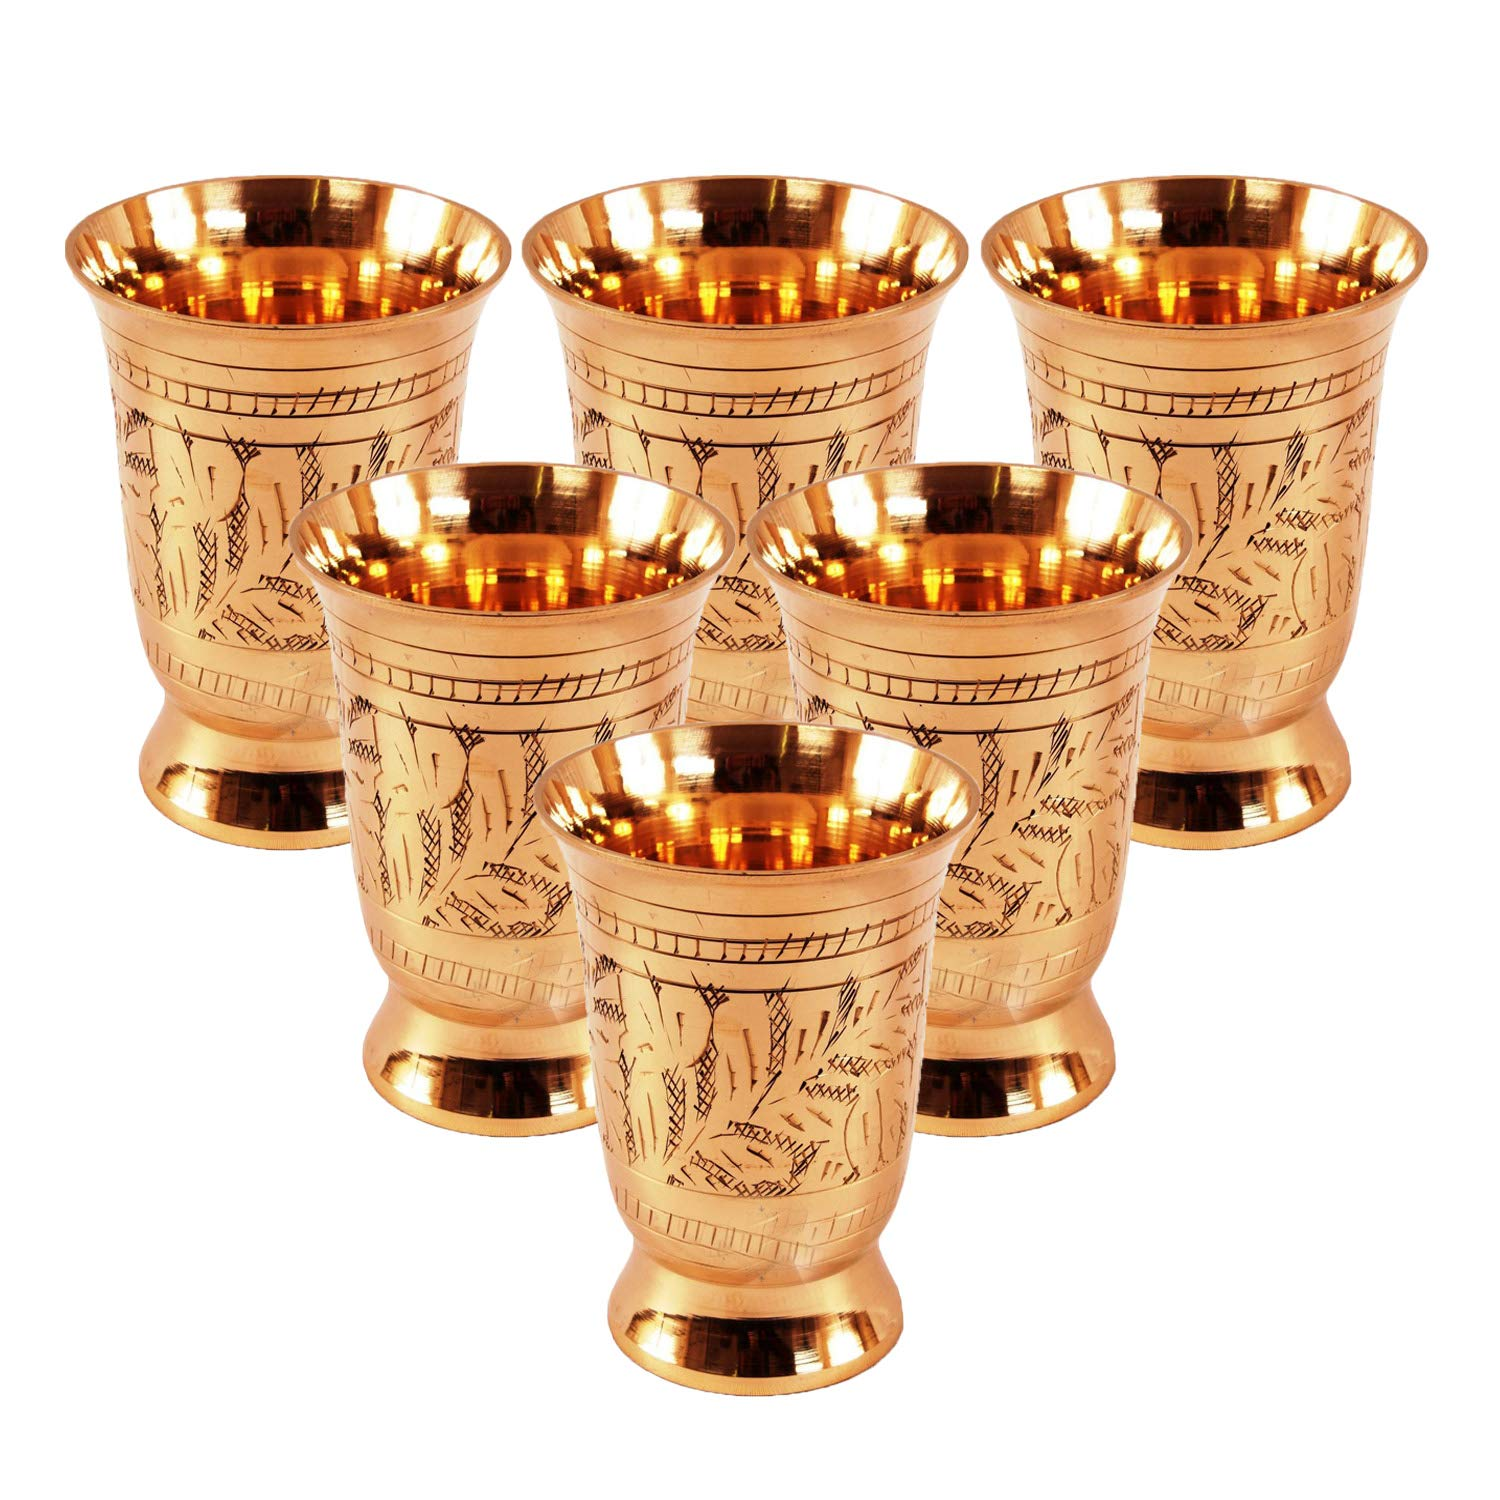 Set Of 6 Mughlai Style Designer Brass Mint Julep Cup Goblet Tumbler Capacity 8.5 Ounce Each